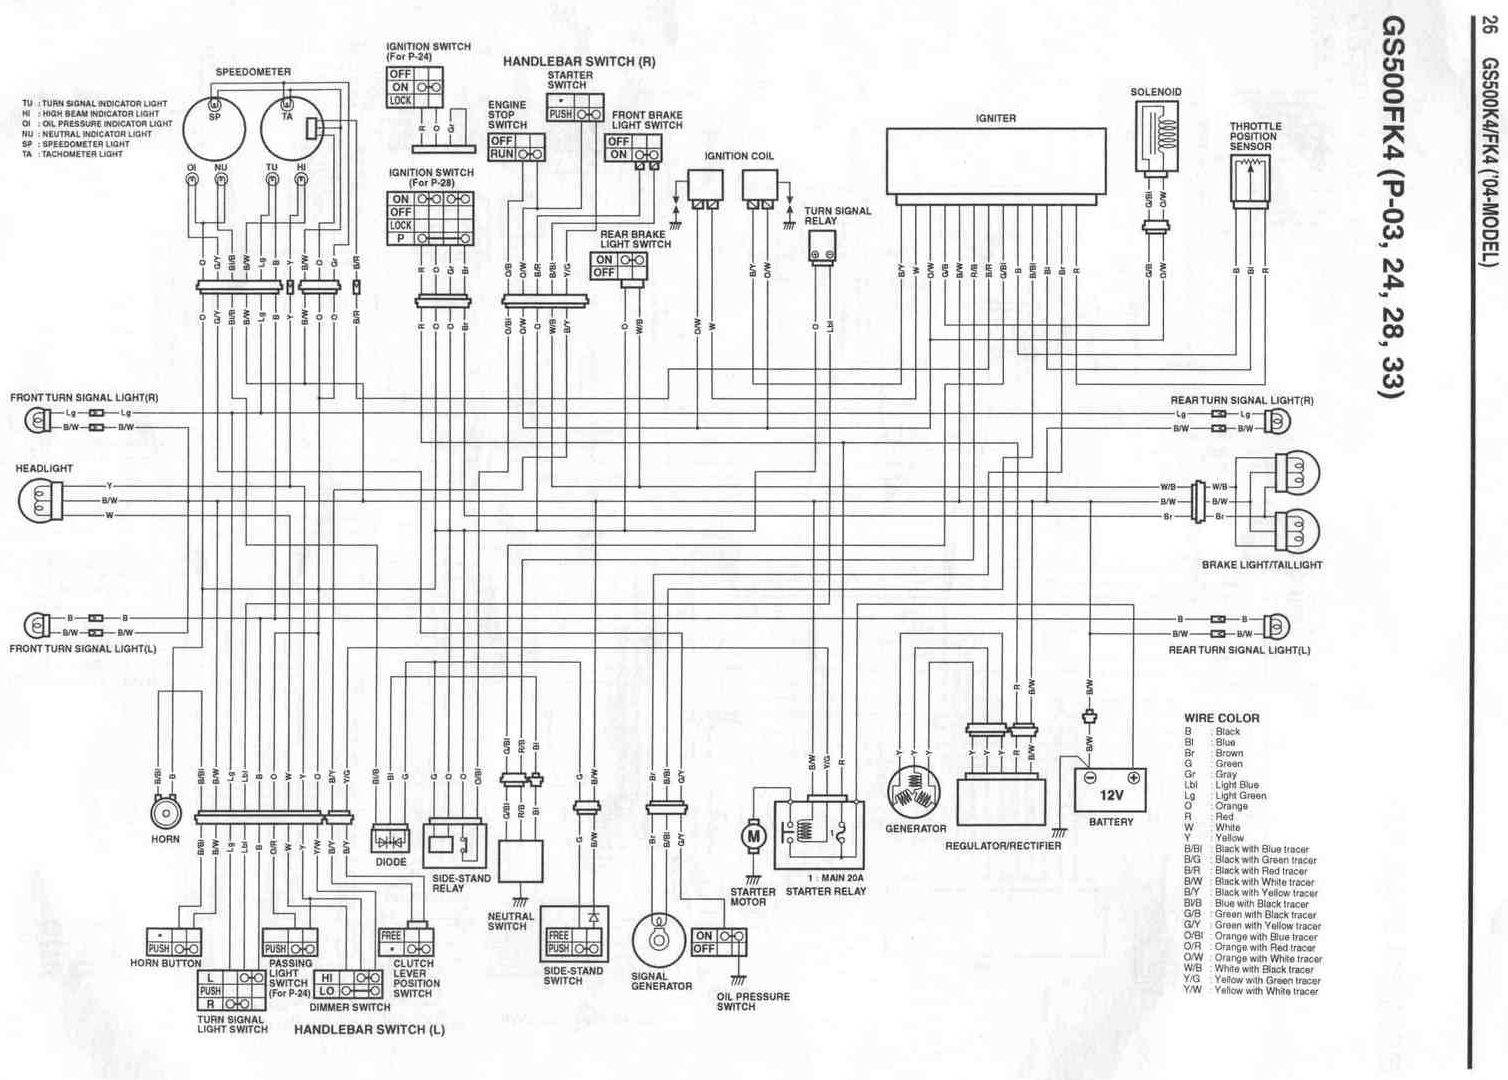 2001 marauder wiring diagram - fuse box honda cr v 2012 -  source-auto3.tukune.jeanjaures37.fr  wiring diagram resource